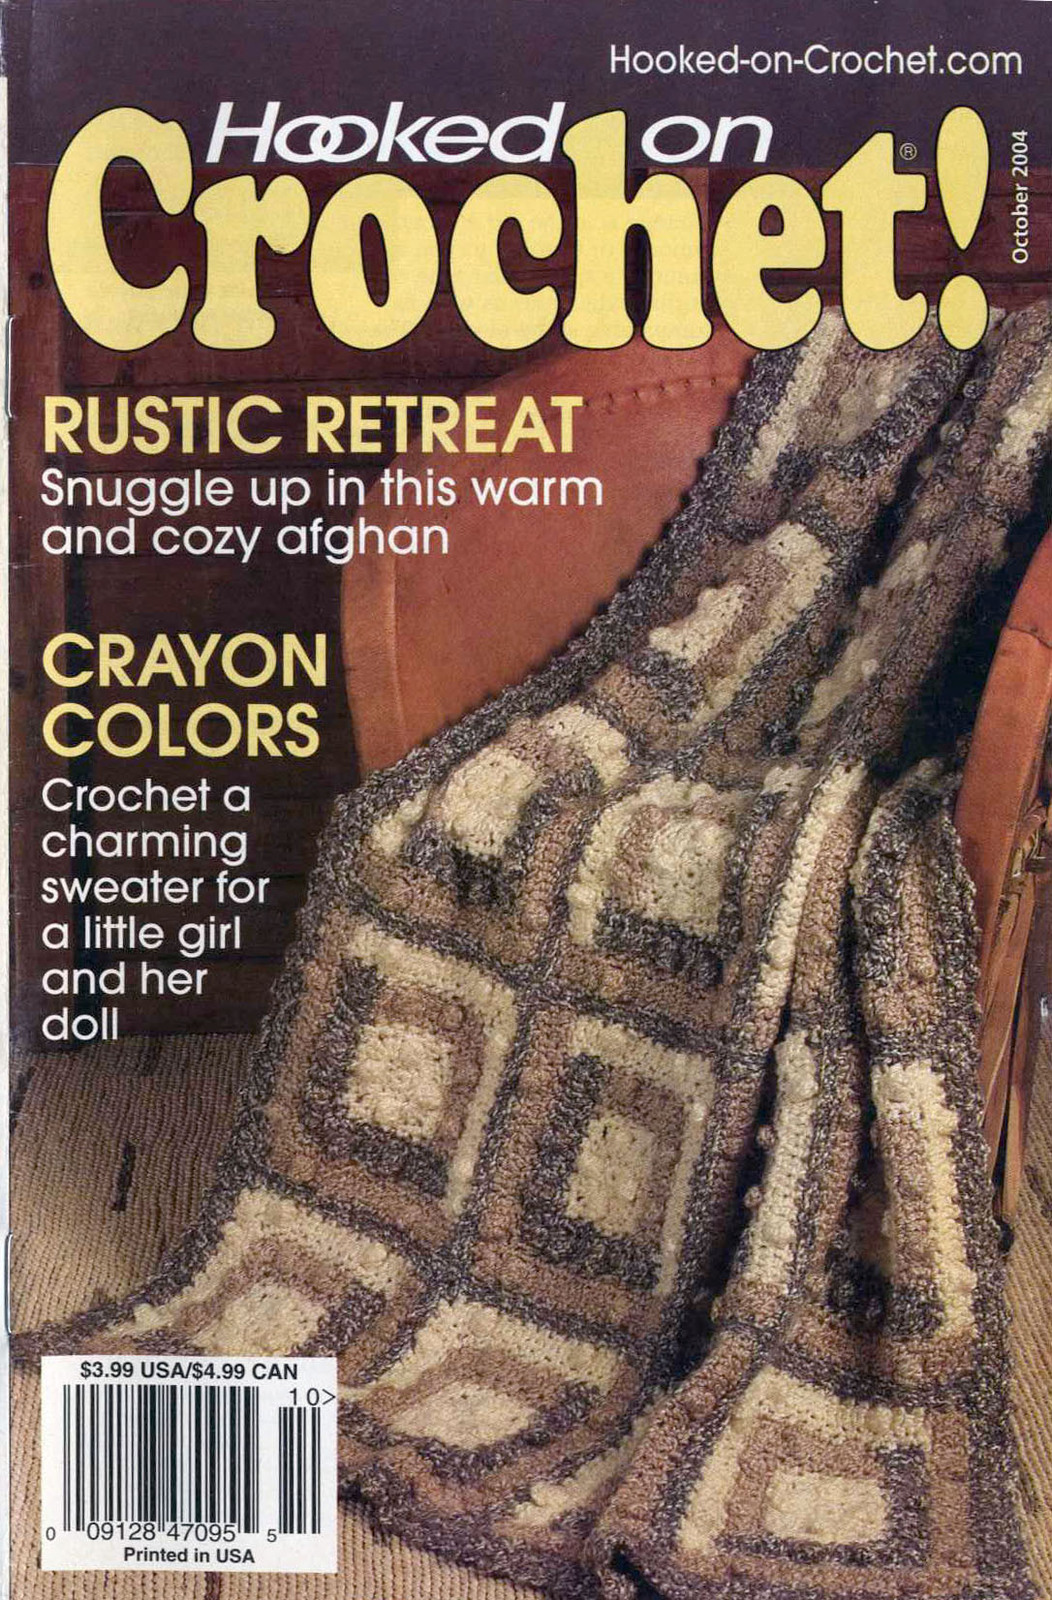 Hooked on Crochet! patterns #107; October 2004